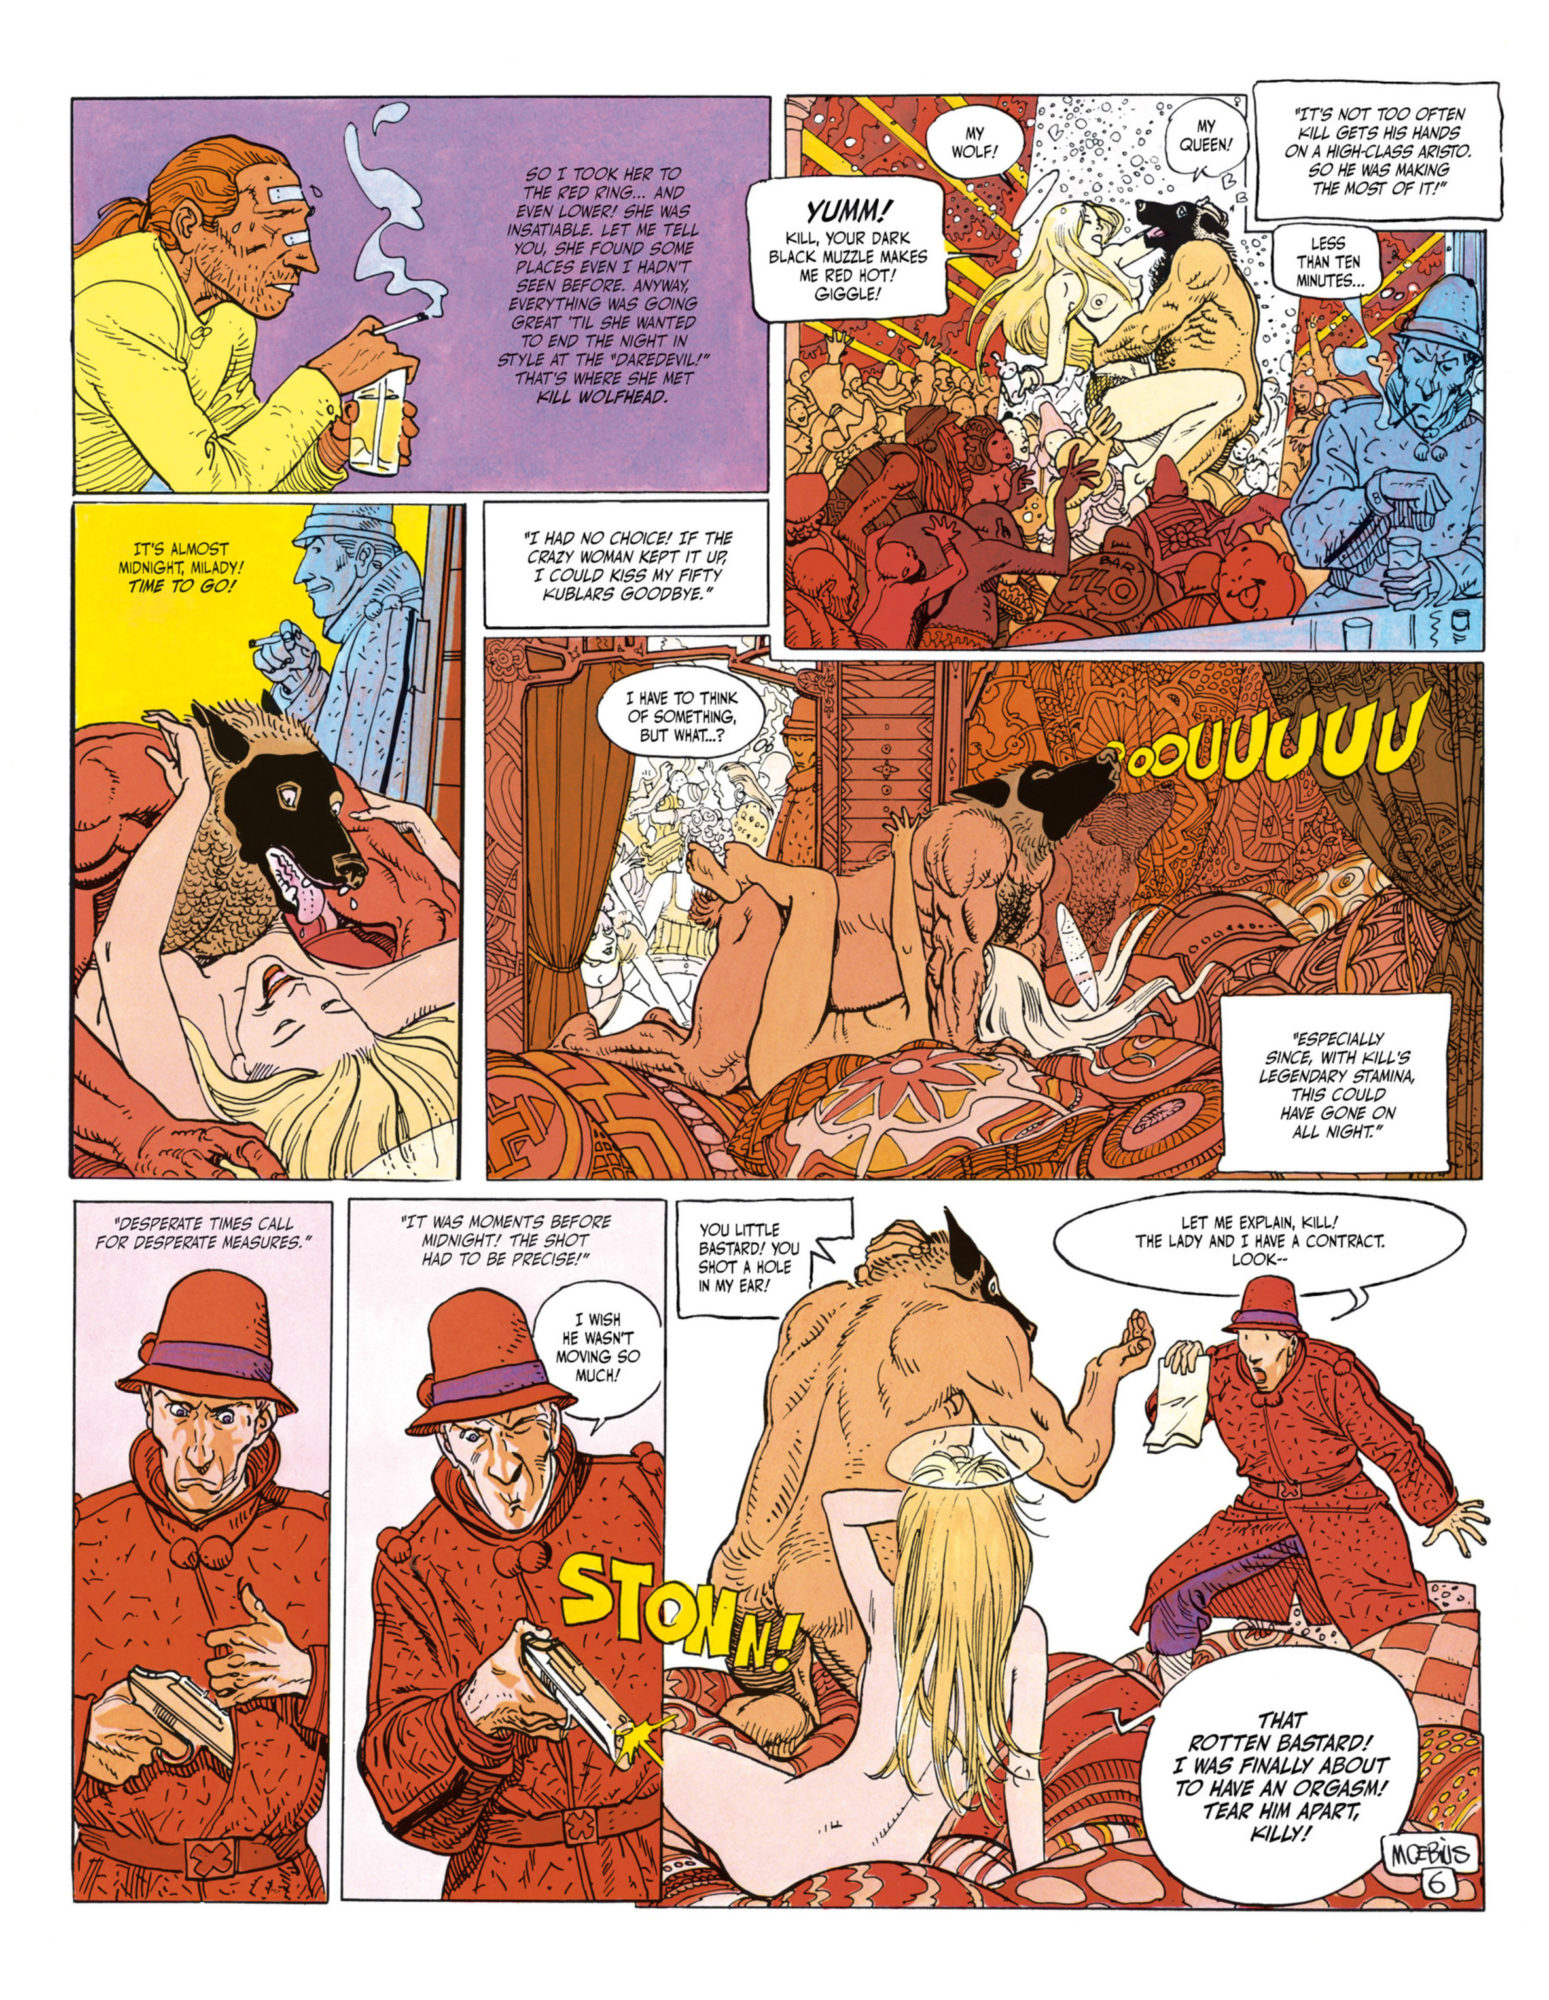 The Incal - Kill wolfhead interrupted by John DiFool